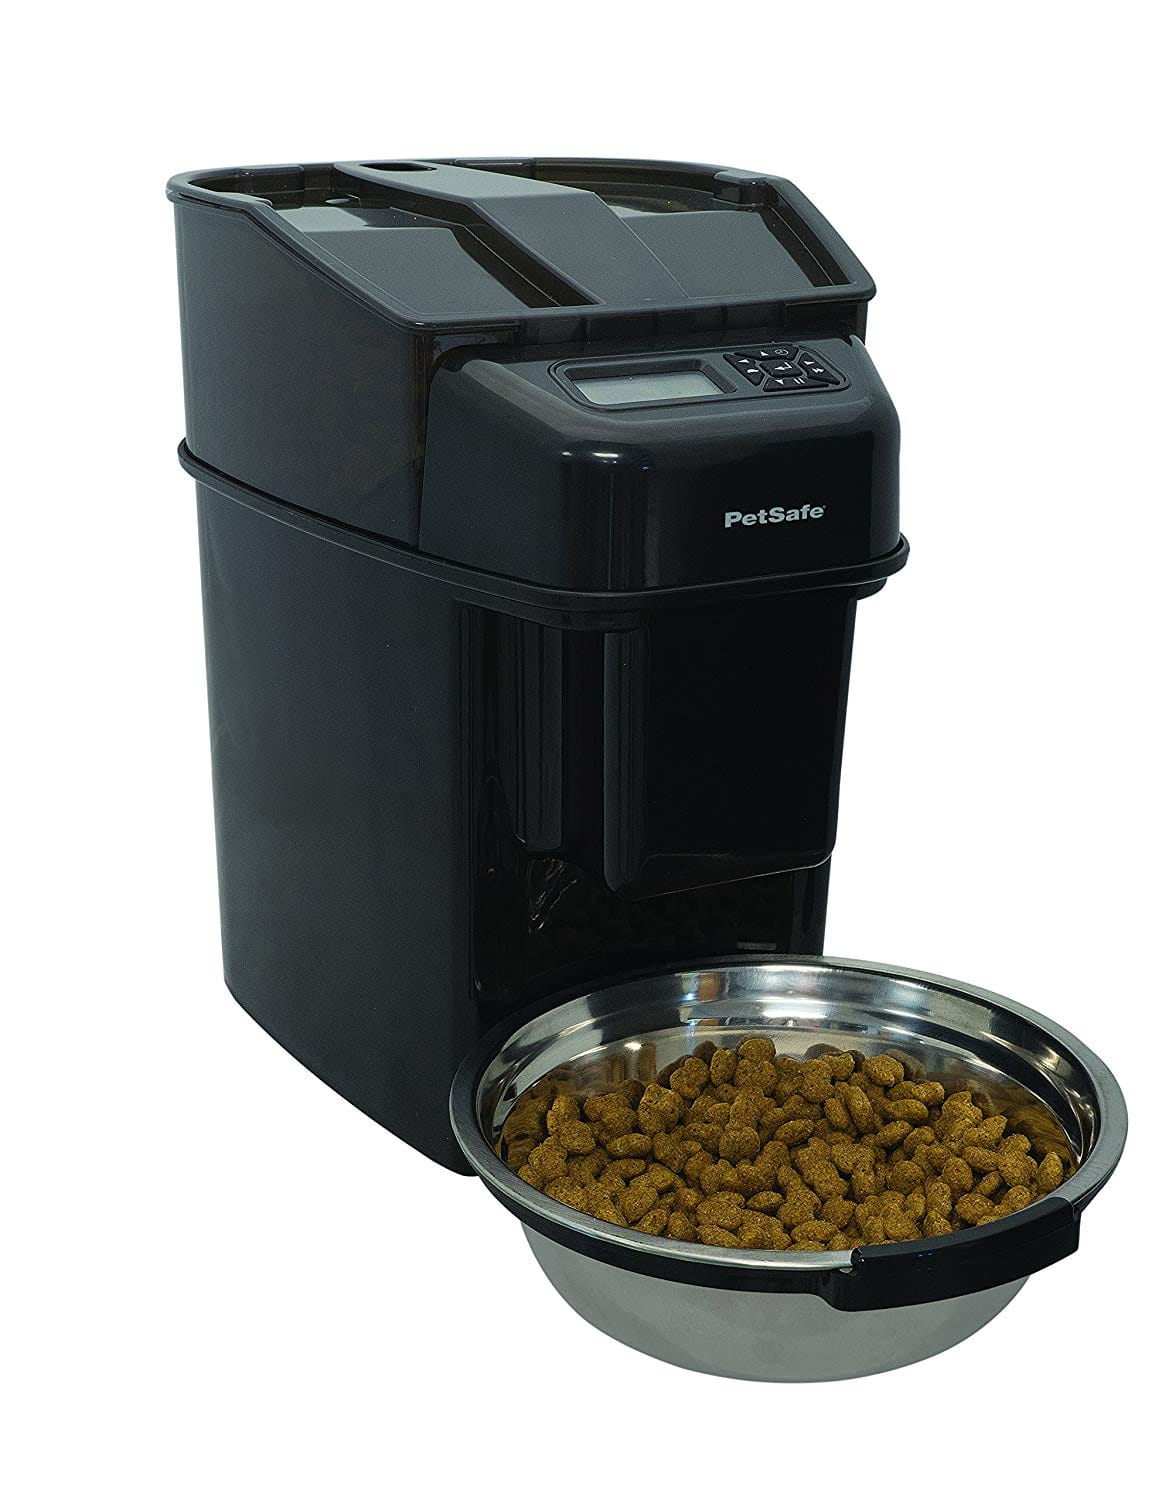 PetSafe Automatic Cat and Dog Feeder with Stainless Steel Bowl - $60.16 + FS